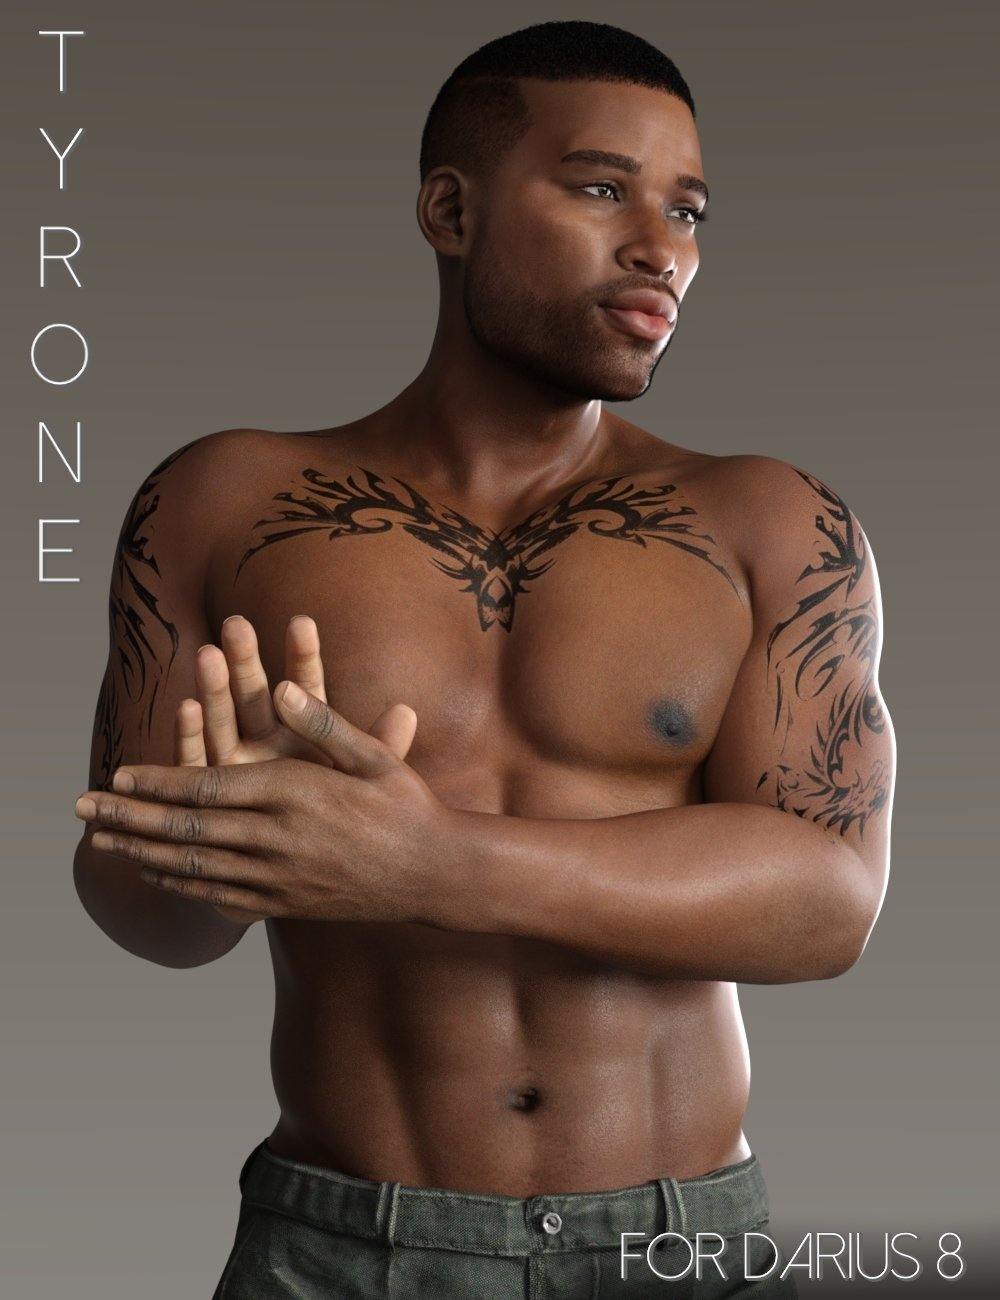 Tyrone for Darius 8 by: RedzStudio, 3D Models by Daz 3D